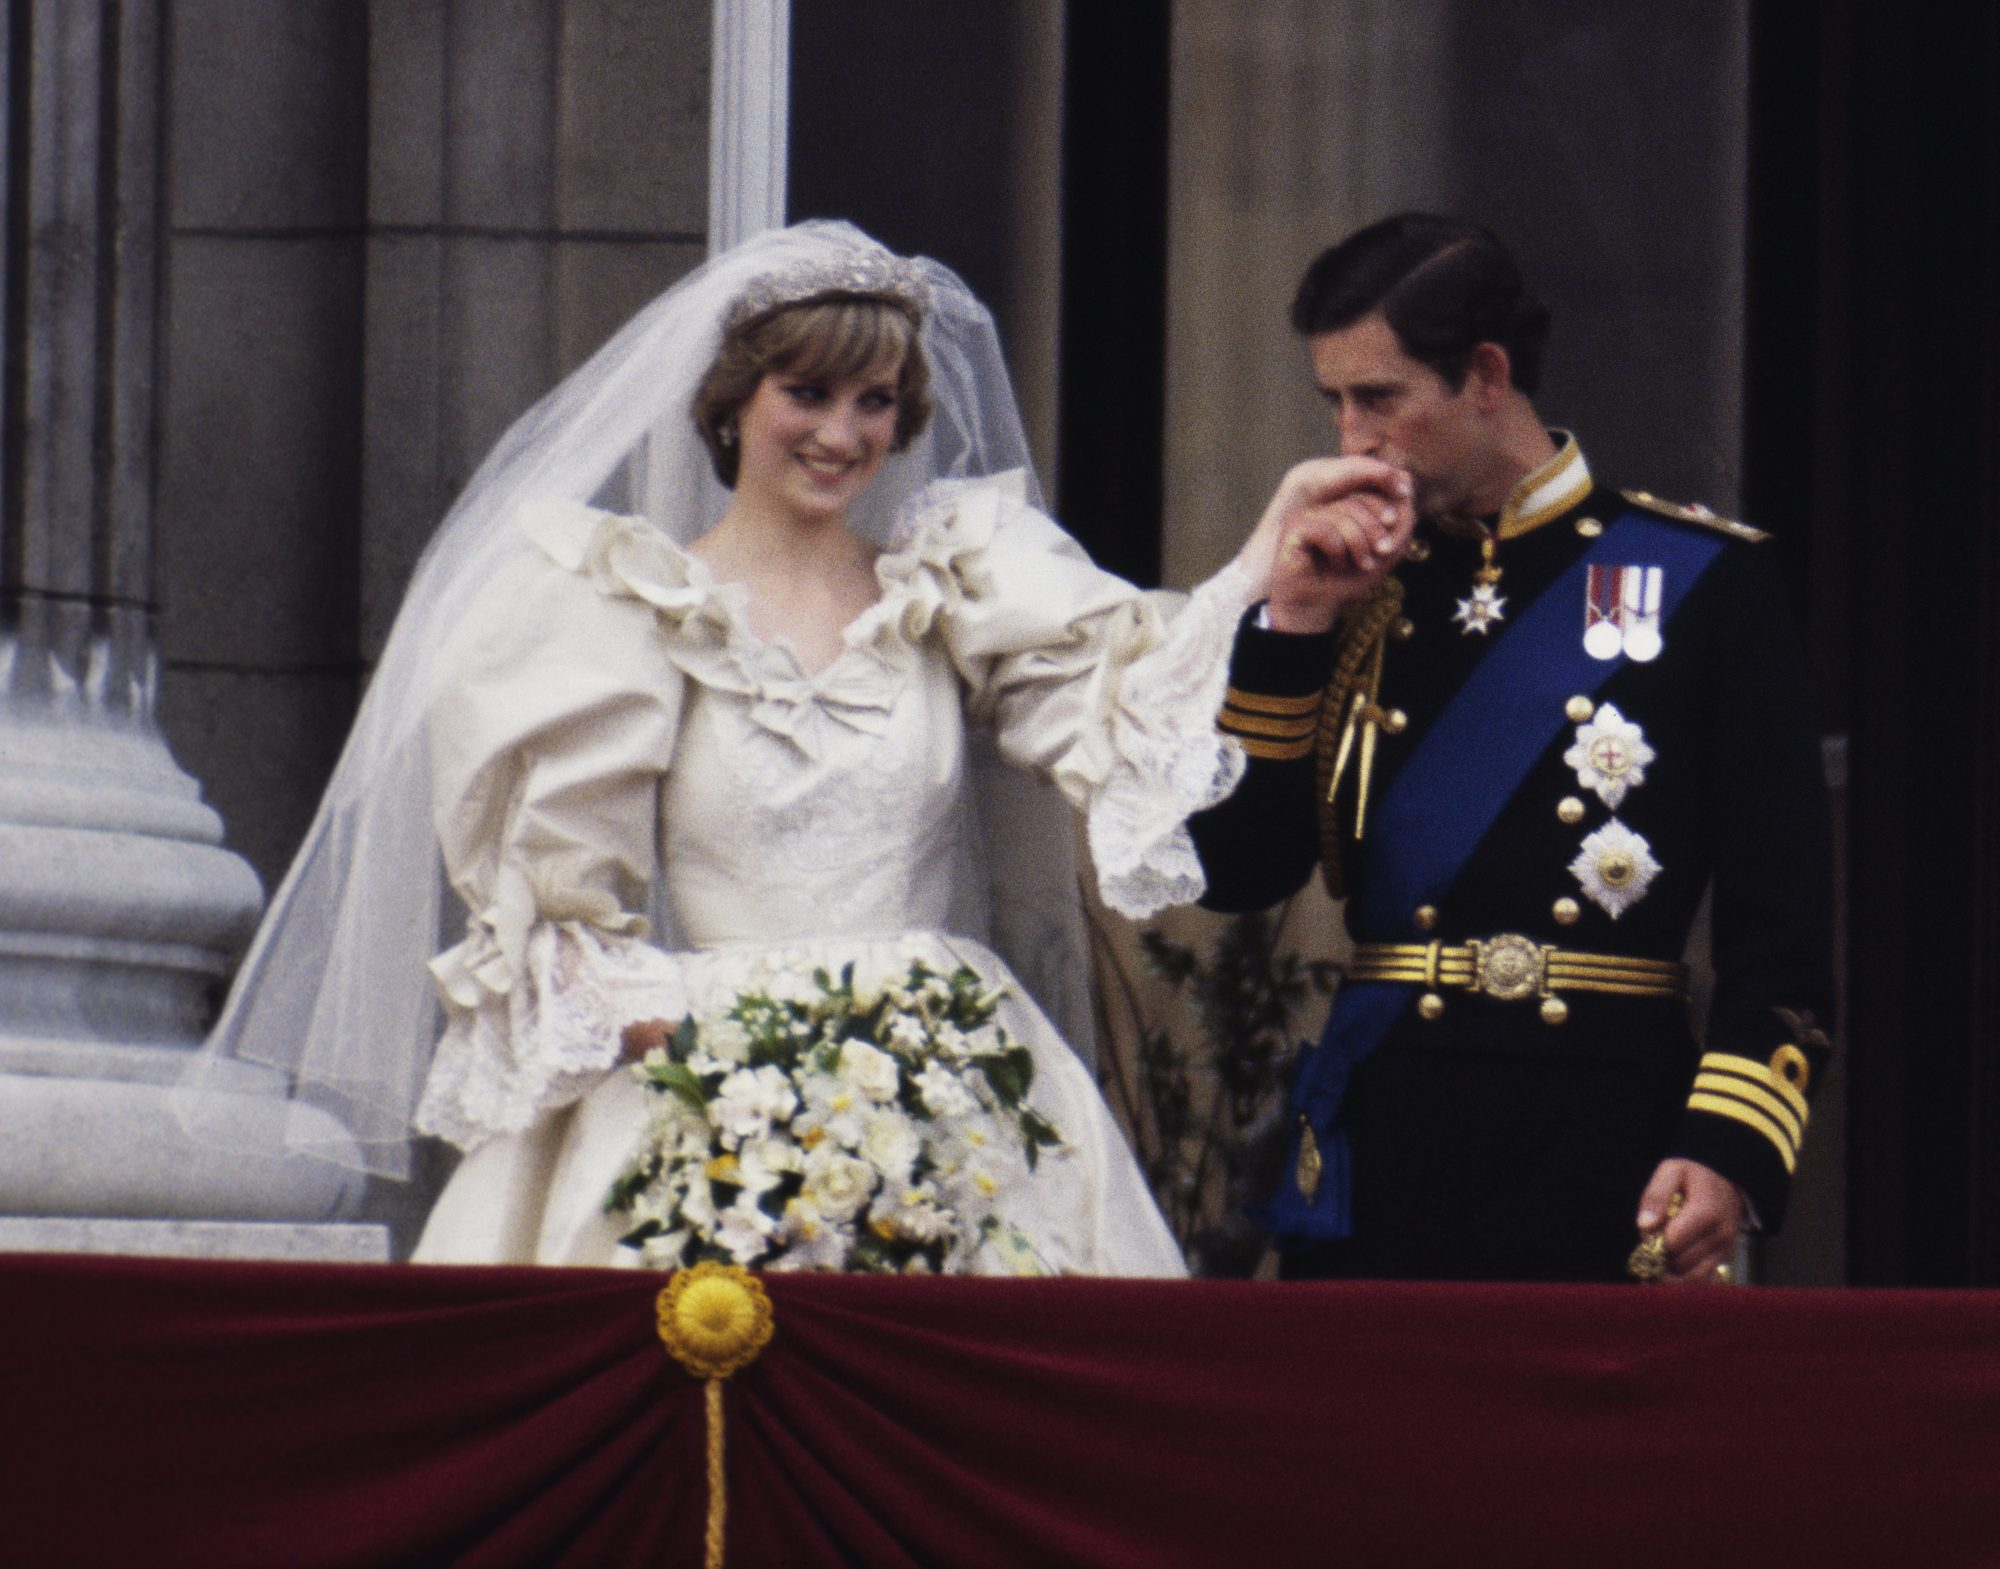 prince charles kissing princess diana's hand as she wears wedding dress after wedding